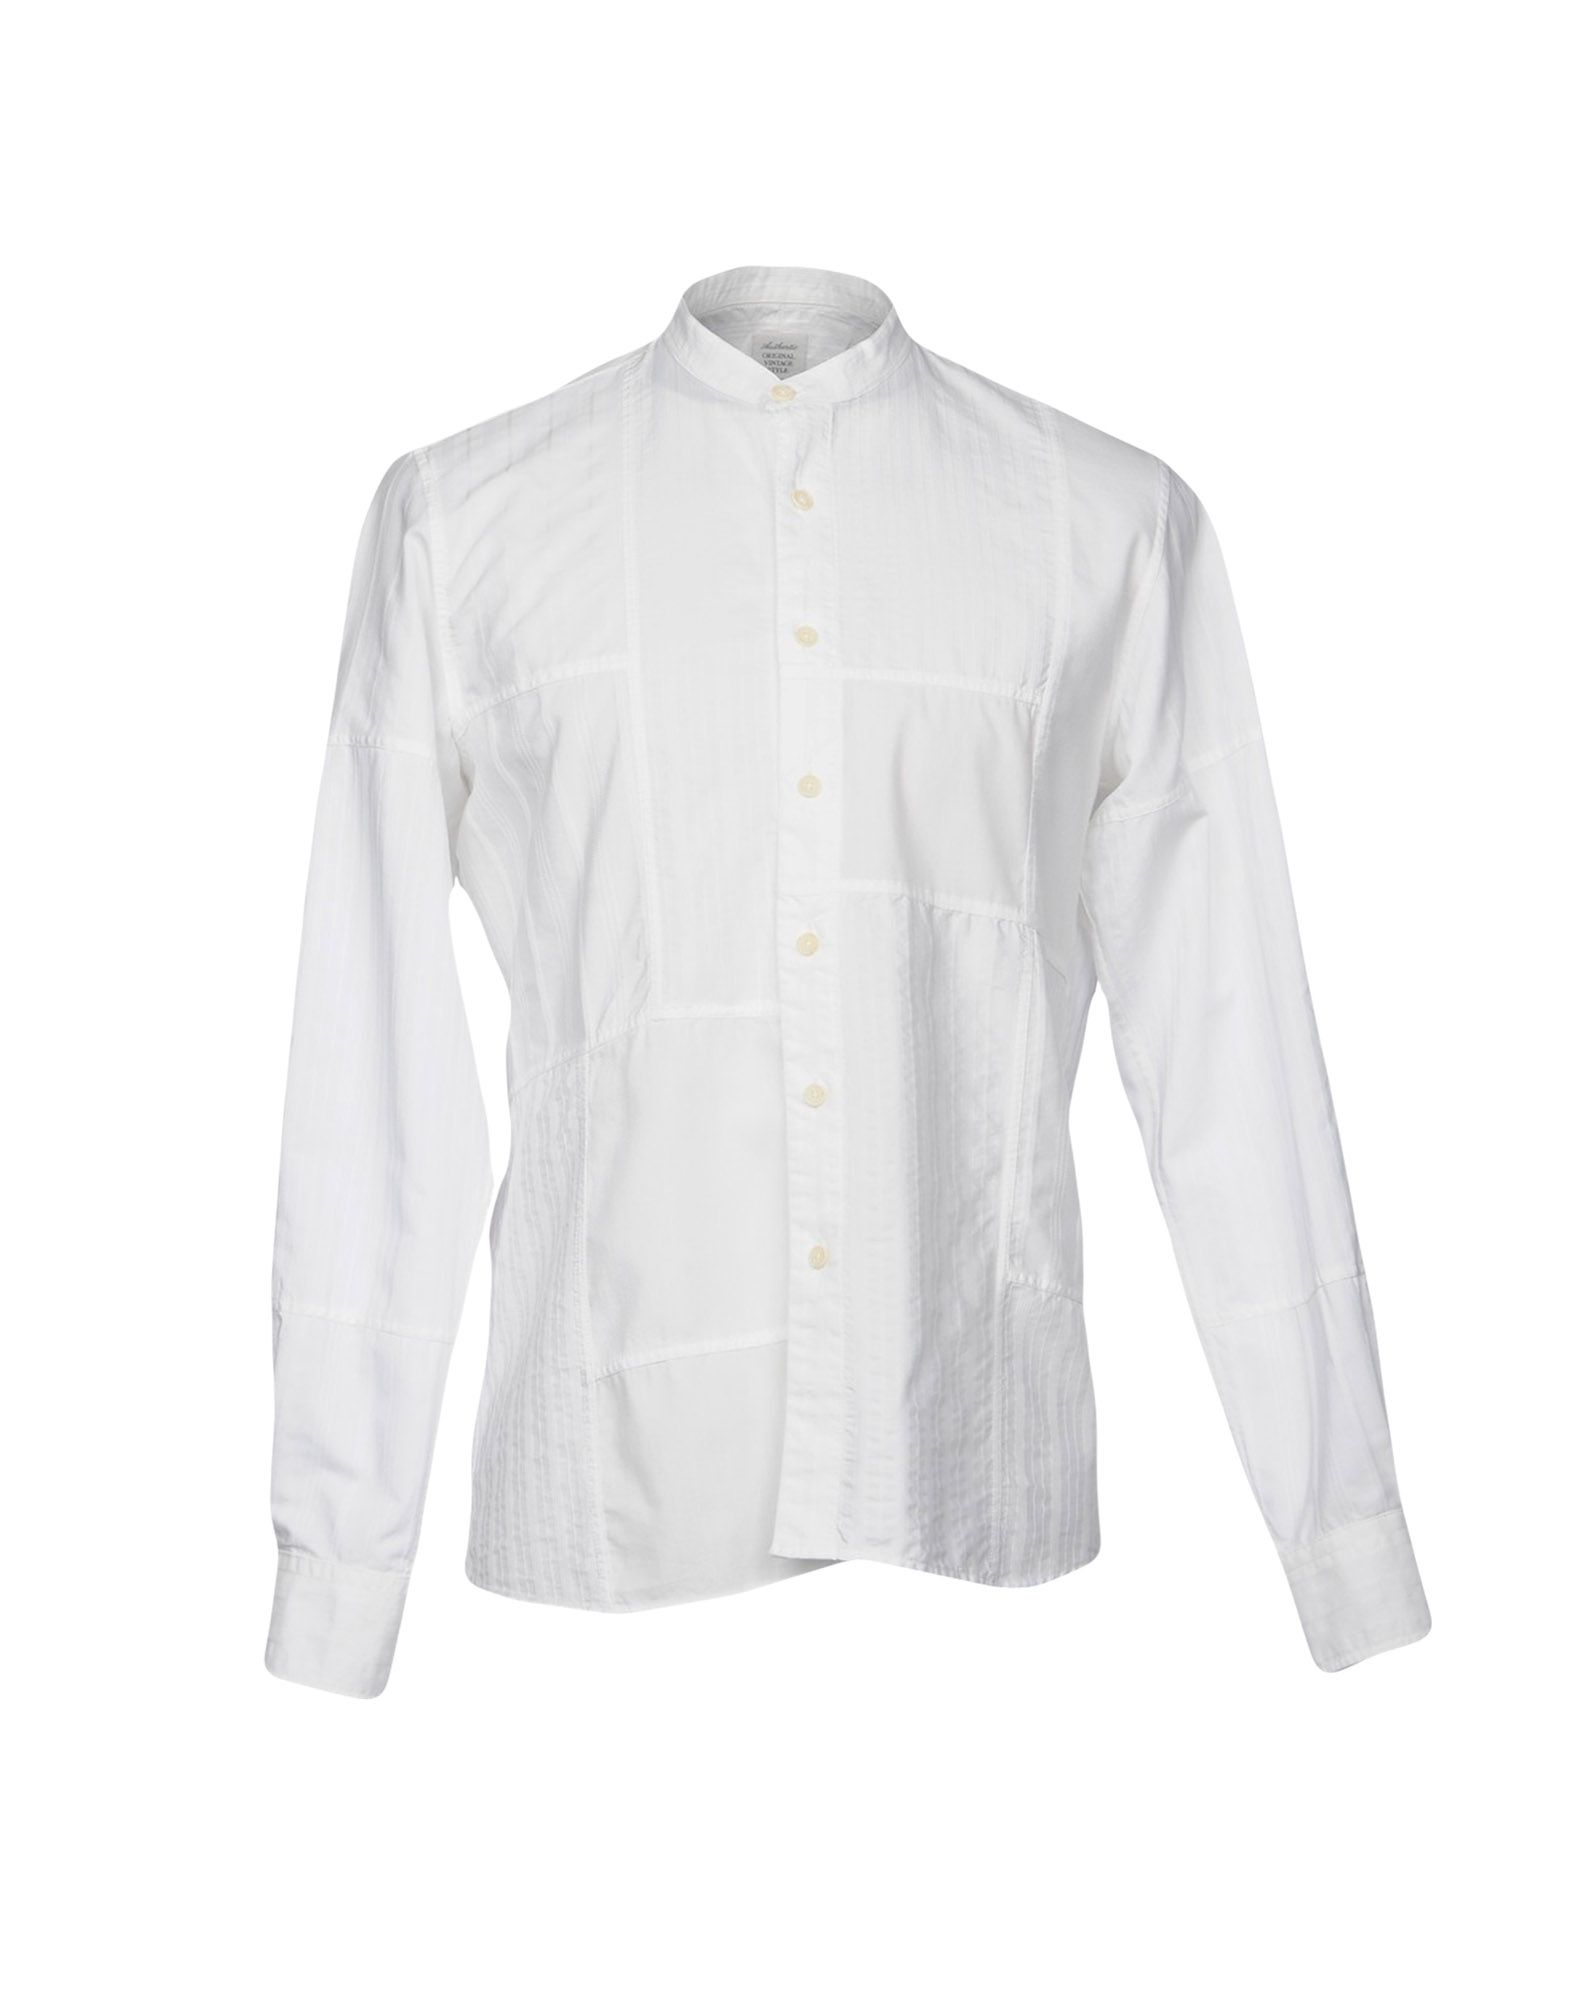 ORIGINAL VINTAGE STYLE Solid Color Shirt in White